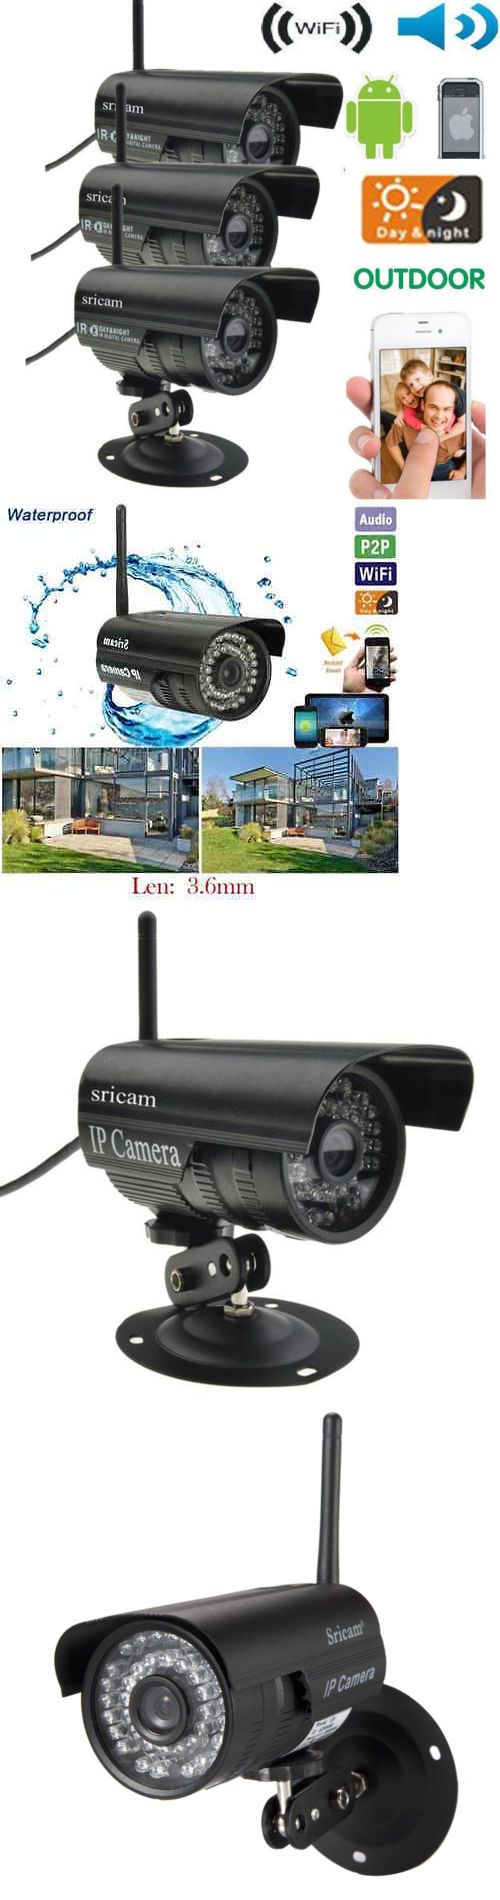 Security Cameras: 3X Sricam Outdoor Wireless Wifi Security Webcam Ir Ip P2p Camera Android System -> BUY IT NOW ONLY: $95.62 on eBay!